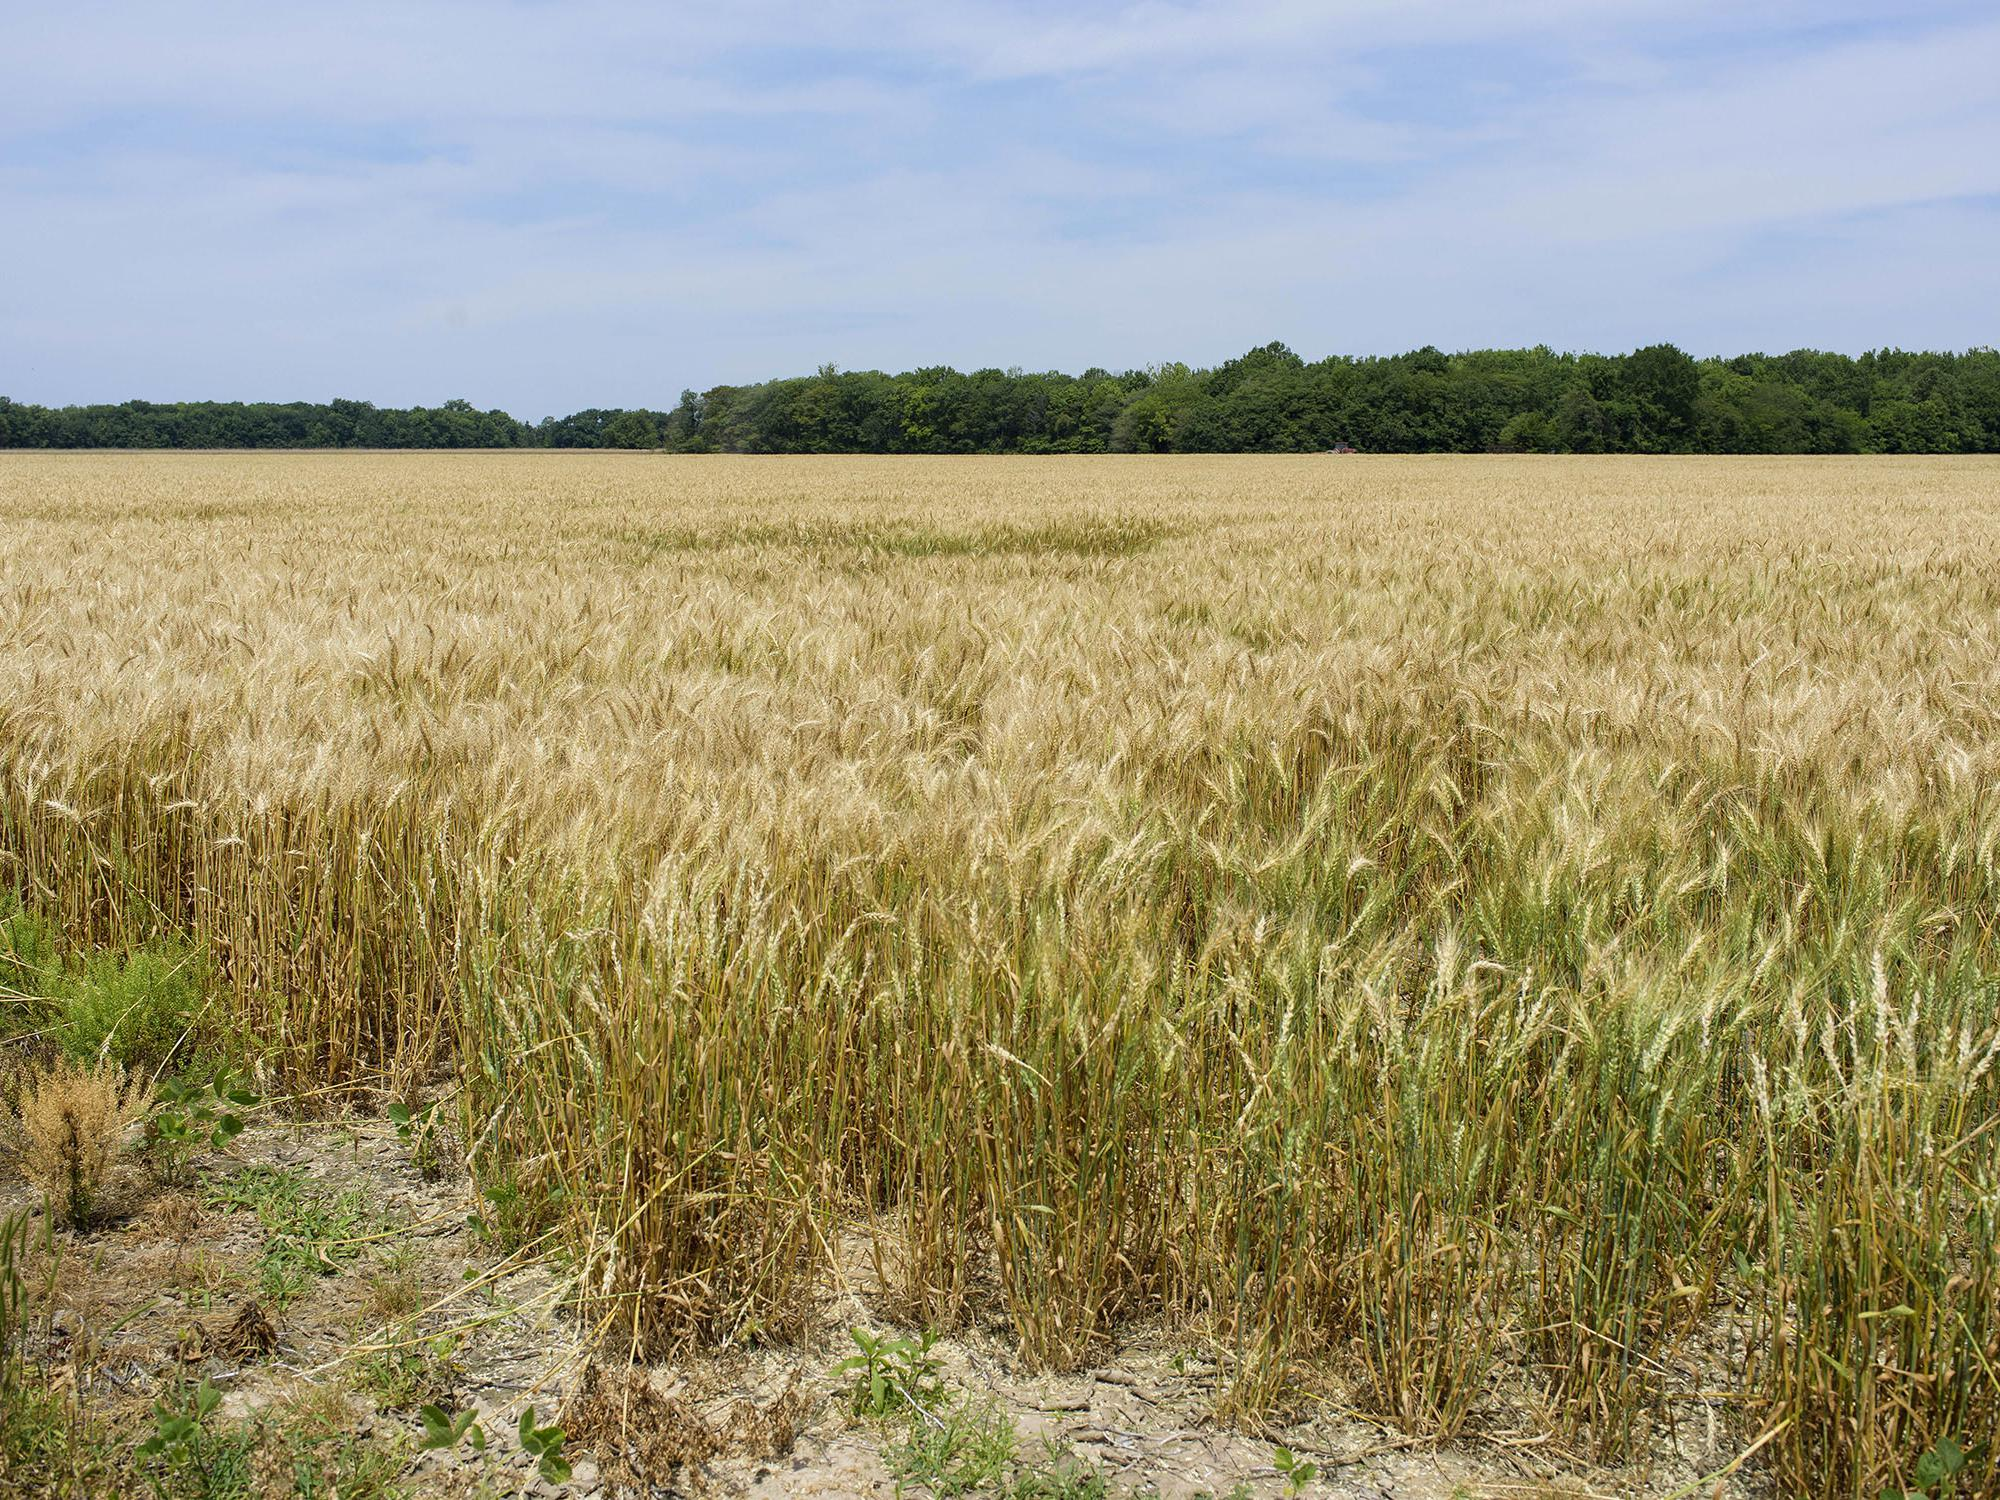 Large field of mature, golden wheat with green trees on the far side.